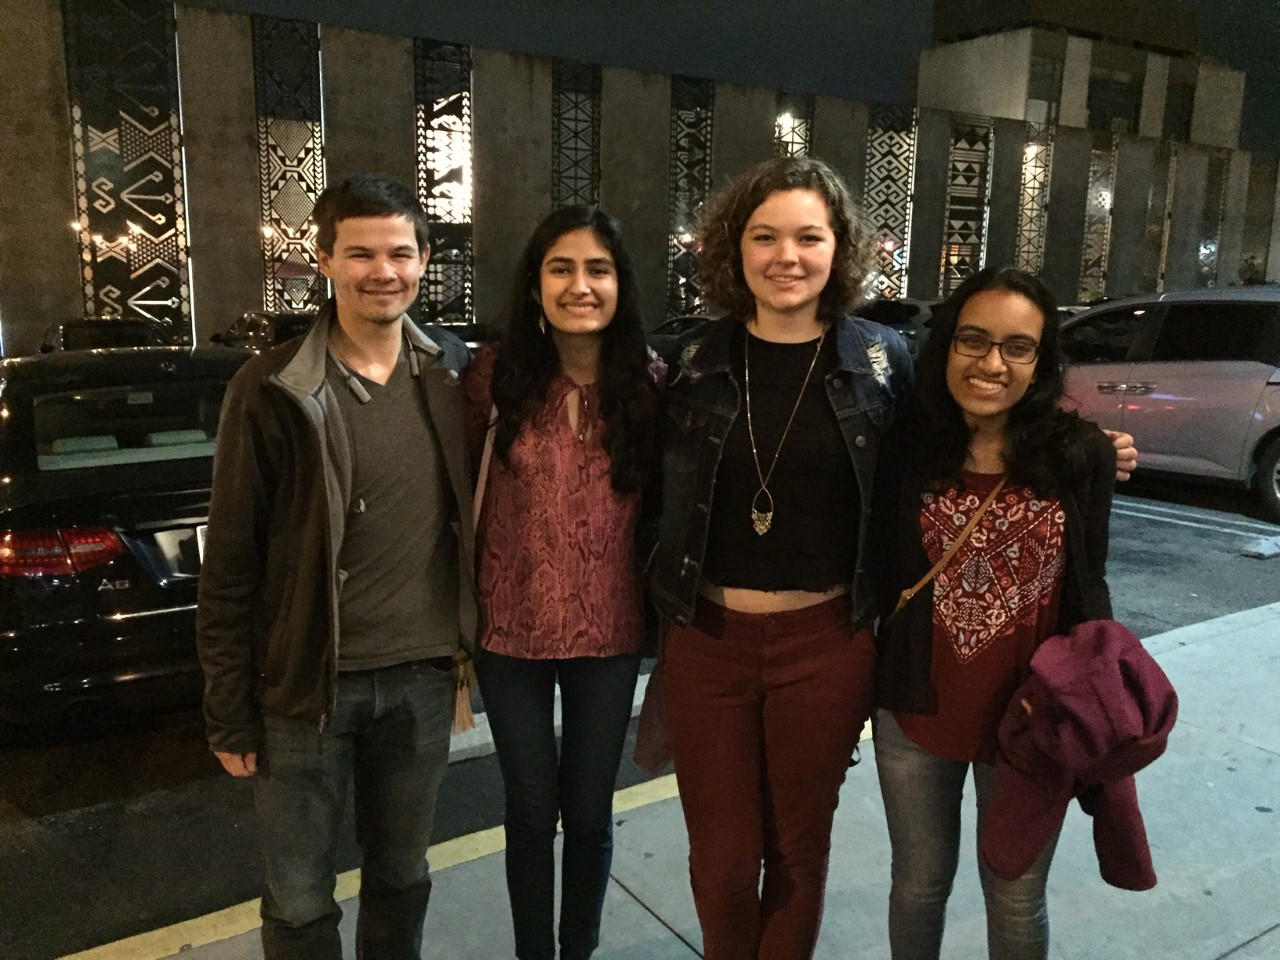 Valere Lambert (BS '14, MS '17) hosted 3 undergraduate students for dinner at Saladang Garden in Pasadena on Saturday, February 23, 2019.